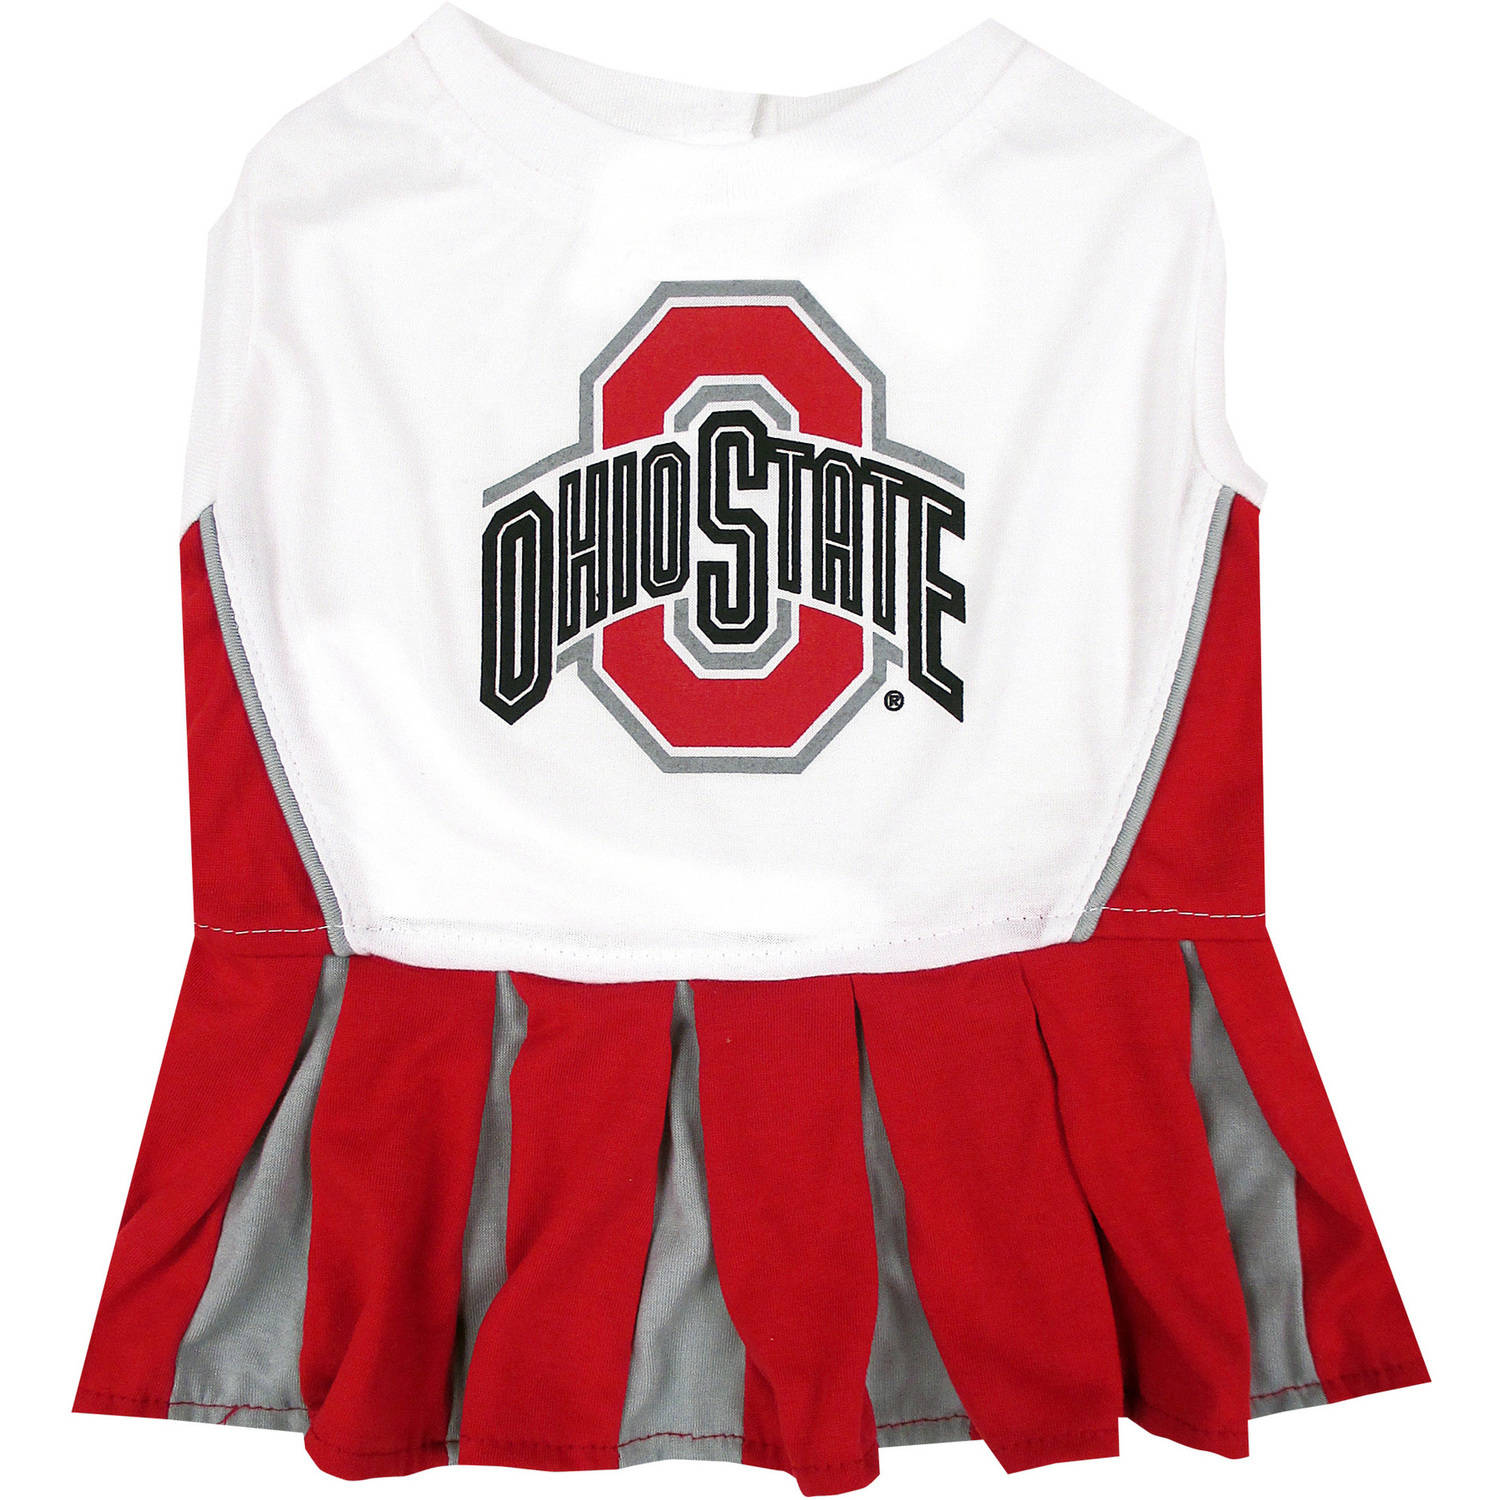 Pets First College Ohio State Buckeyes Cheerleader, 3 Sizes Pet Dress Available. Licensed Dog Outfit